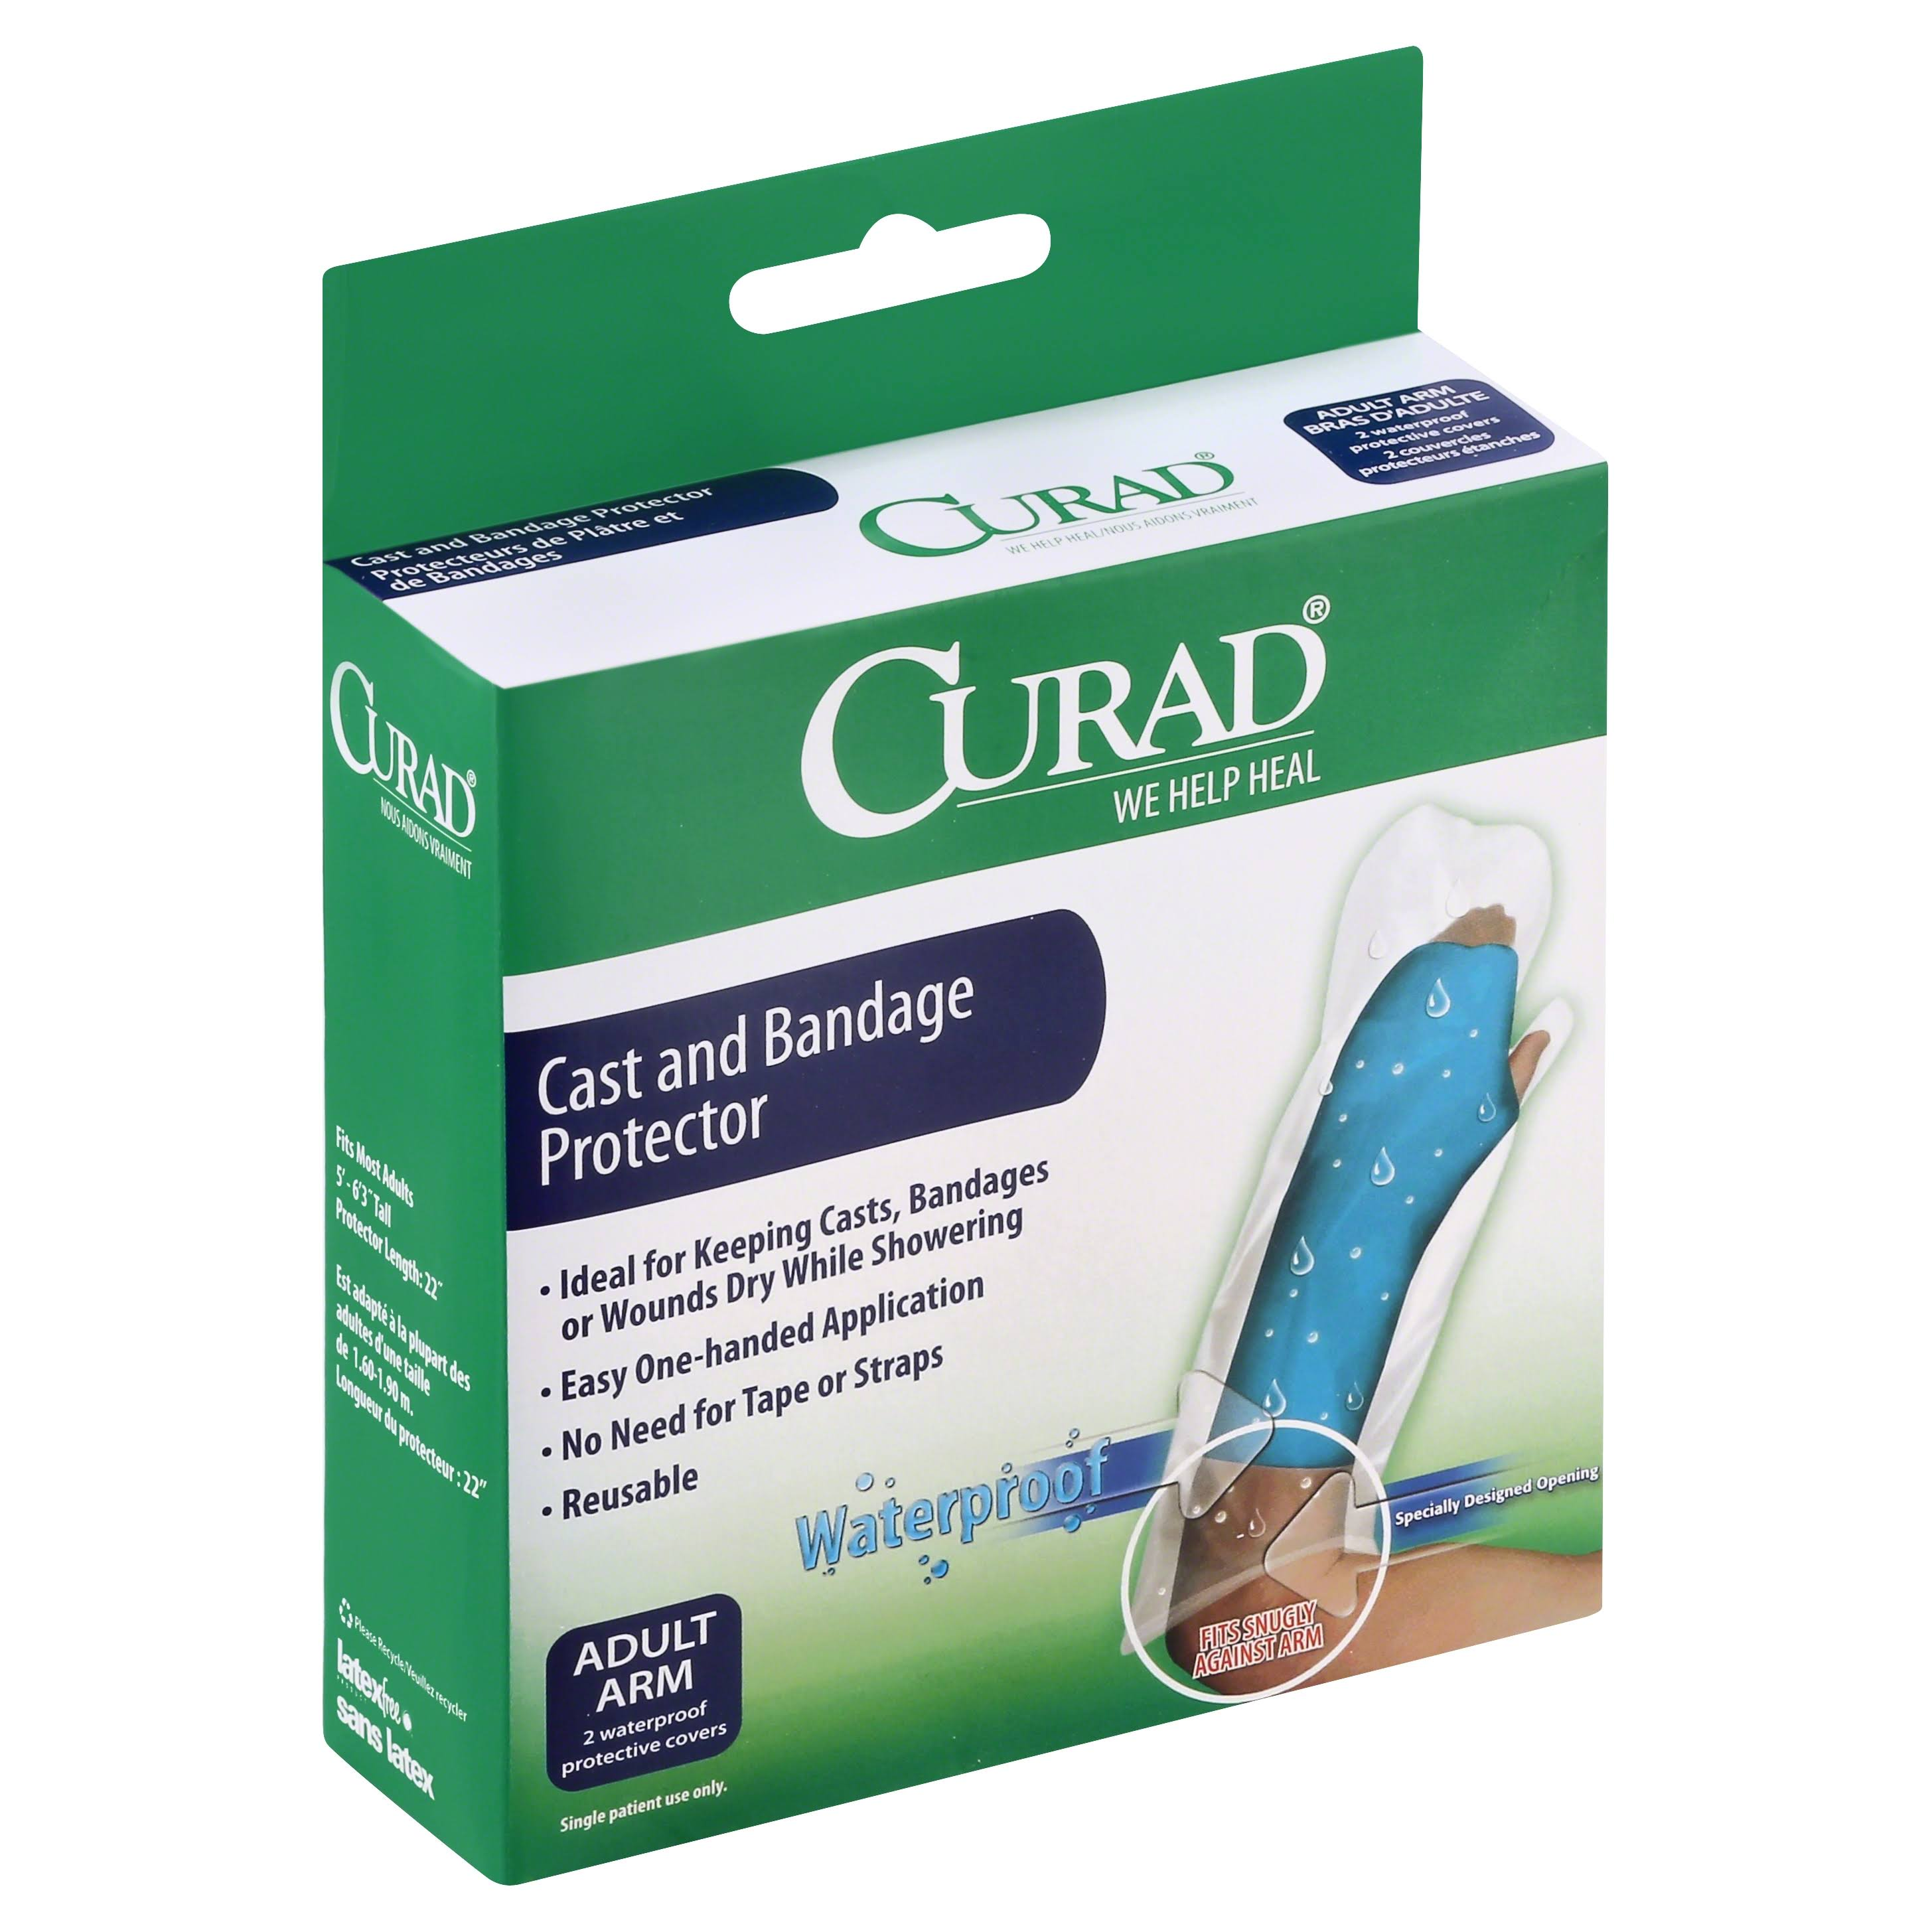 Curad Cast And Bandage Protector - Adult Arm, 2 Waterproof Protective Covers